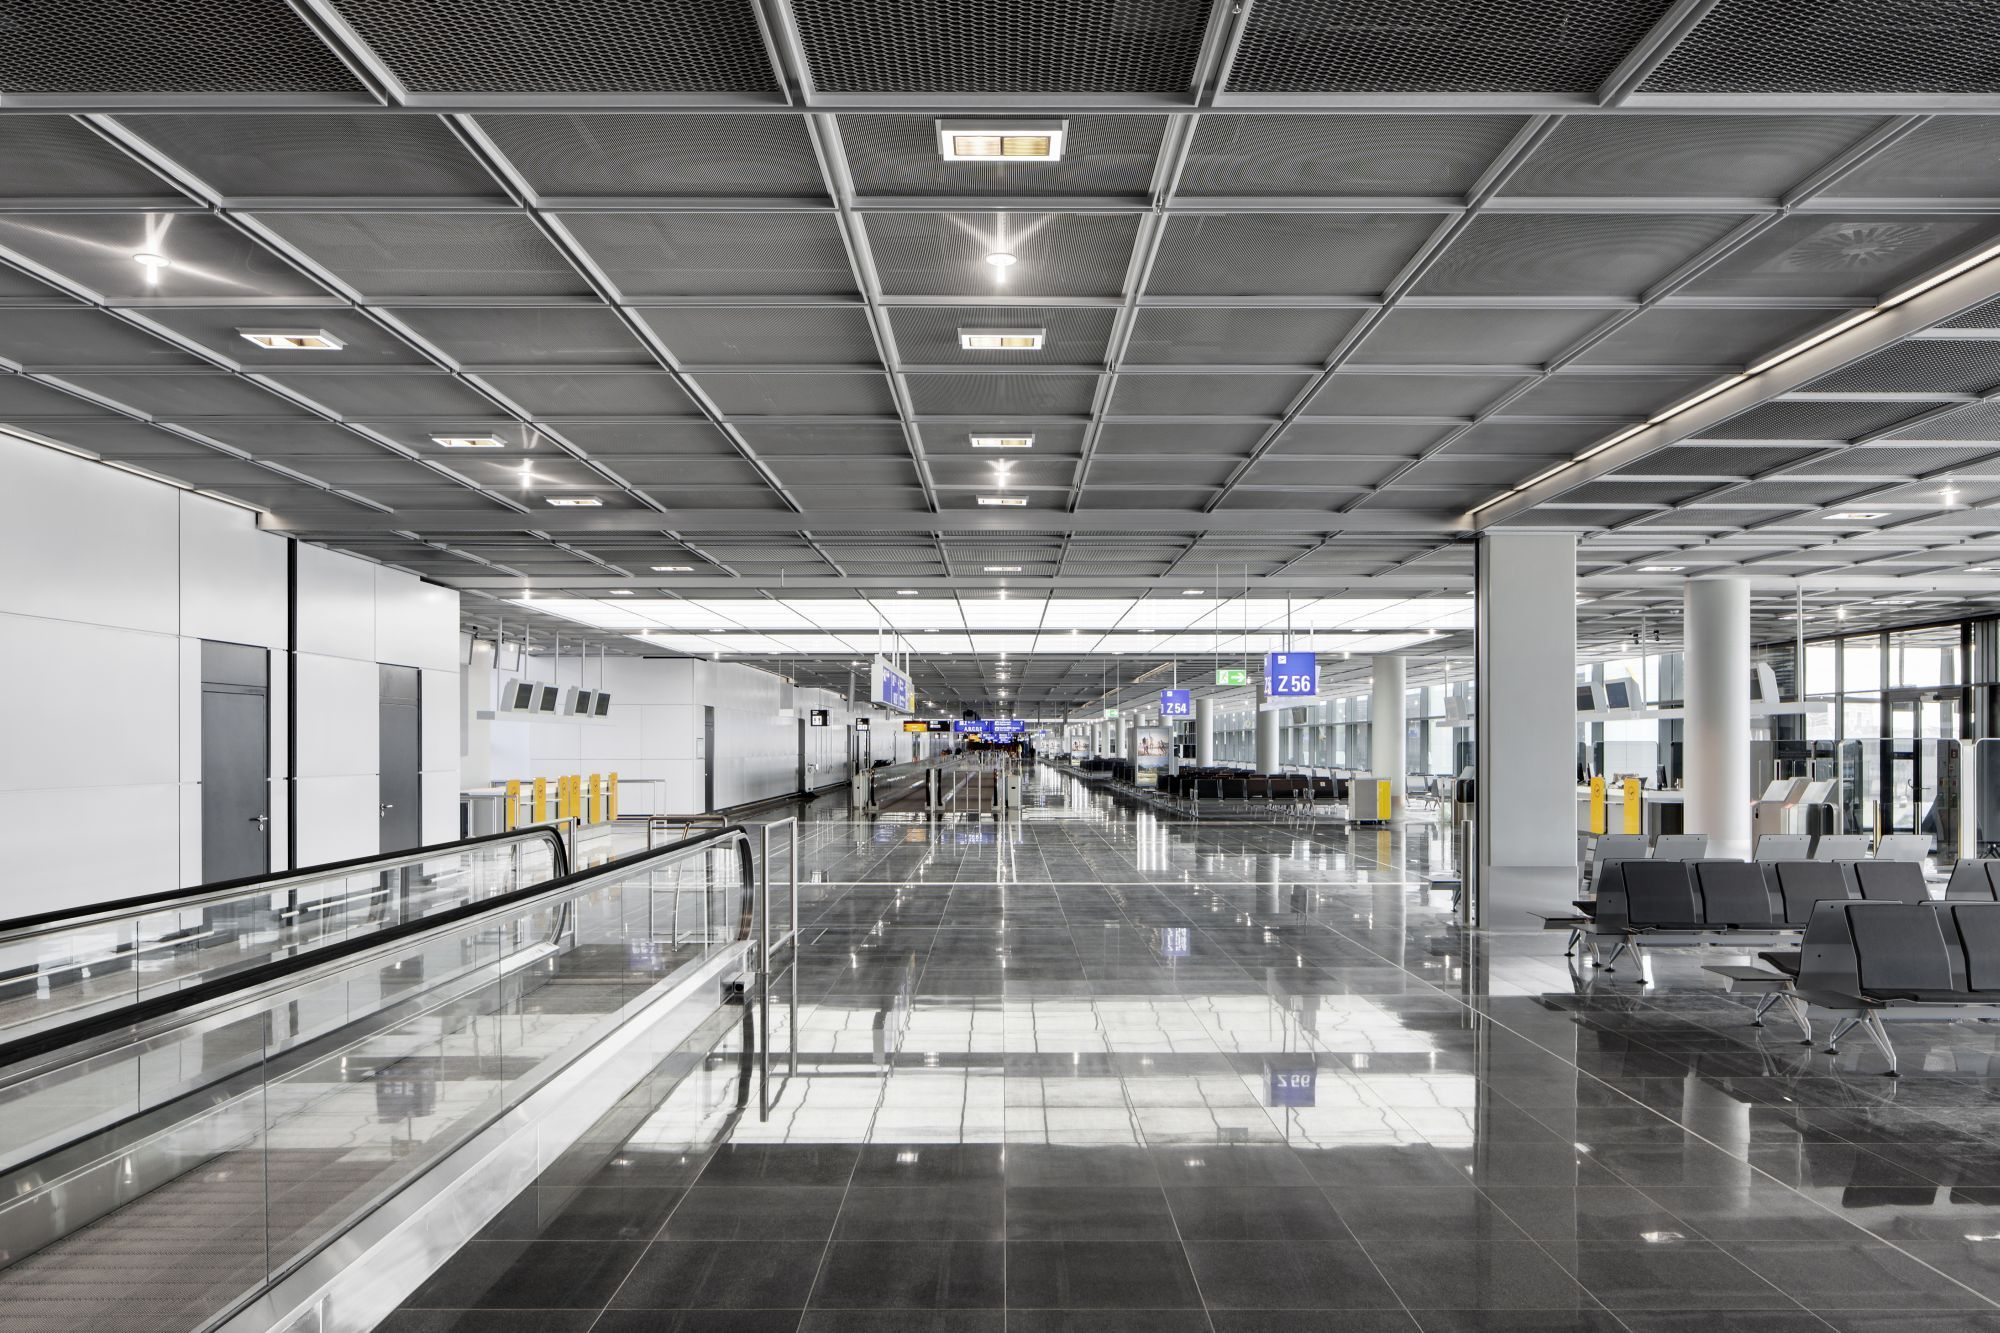 gallery of extension of gate a at frankfurt airport gmp architekten 4. Black Bedroom Furniture Sets. Home Design Ideas